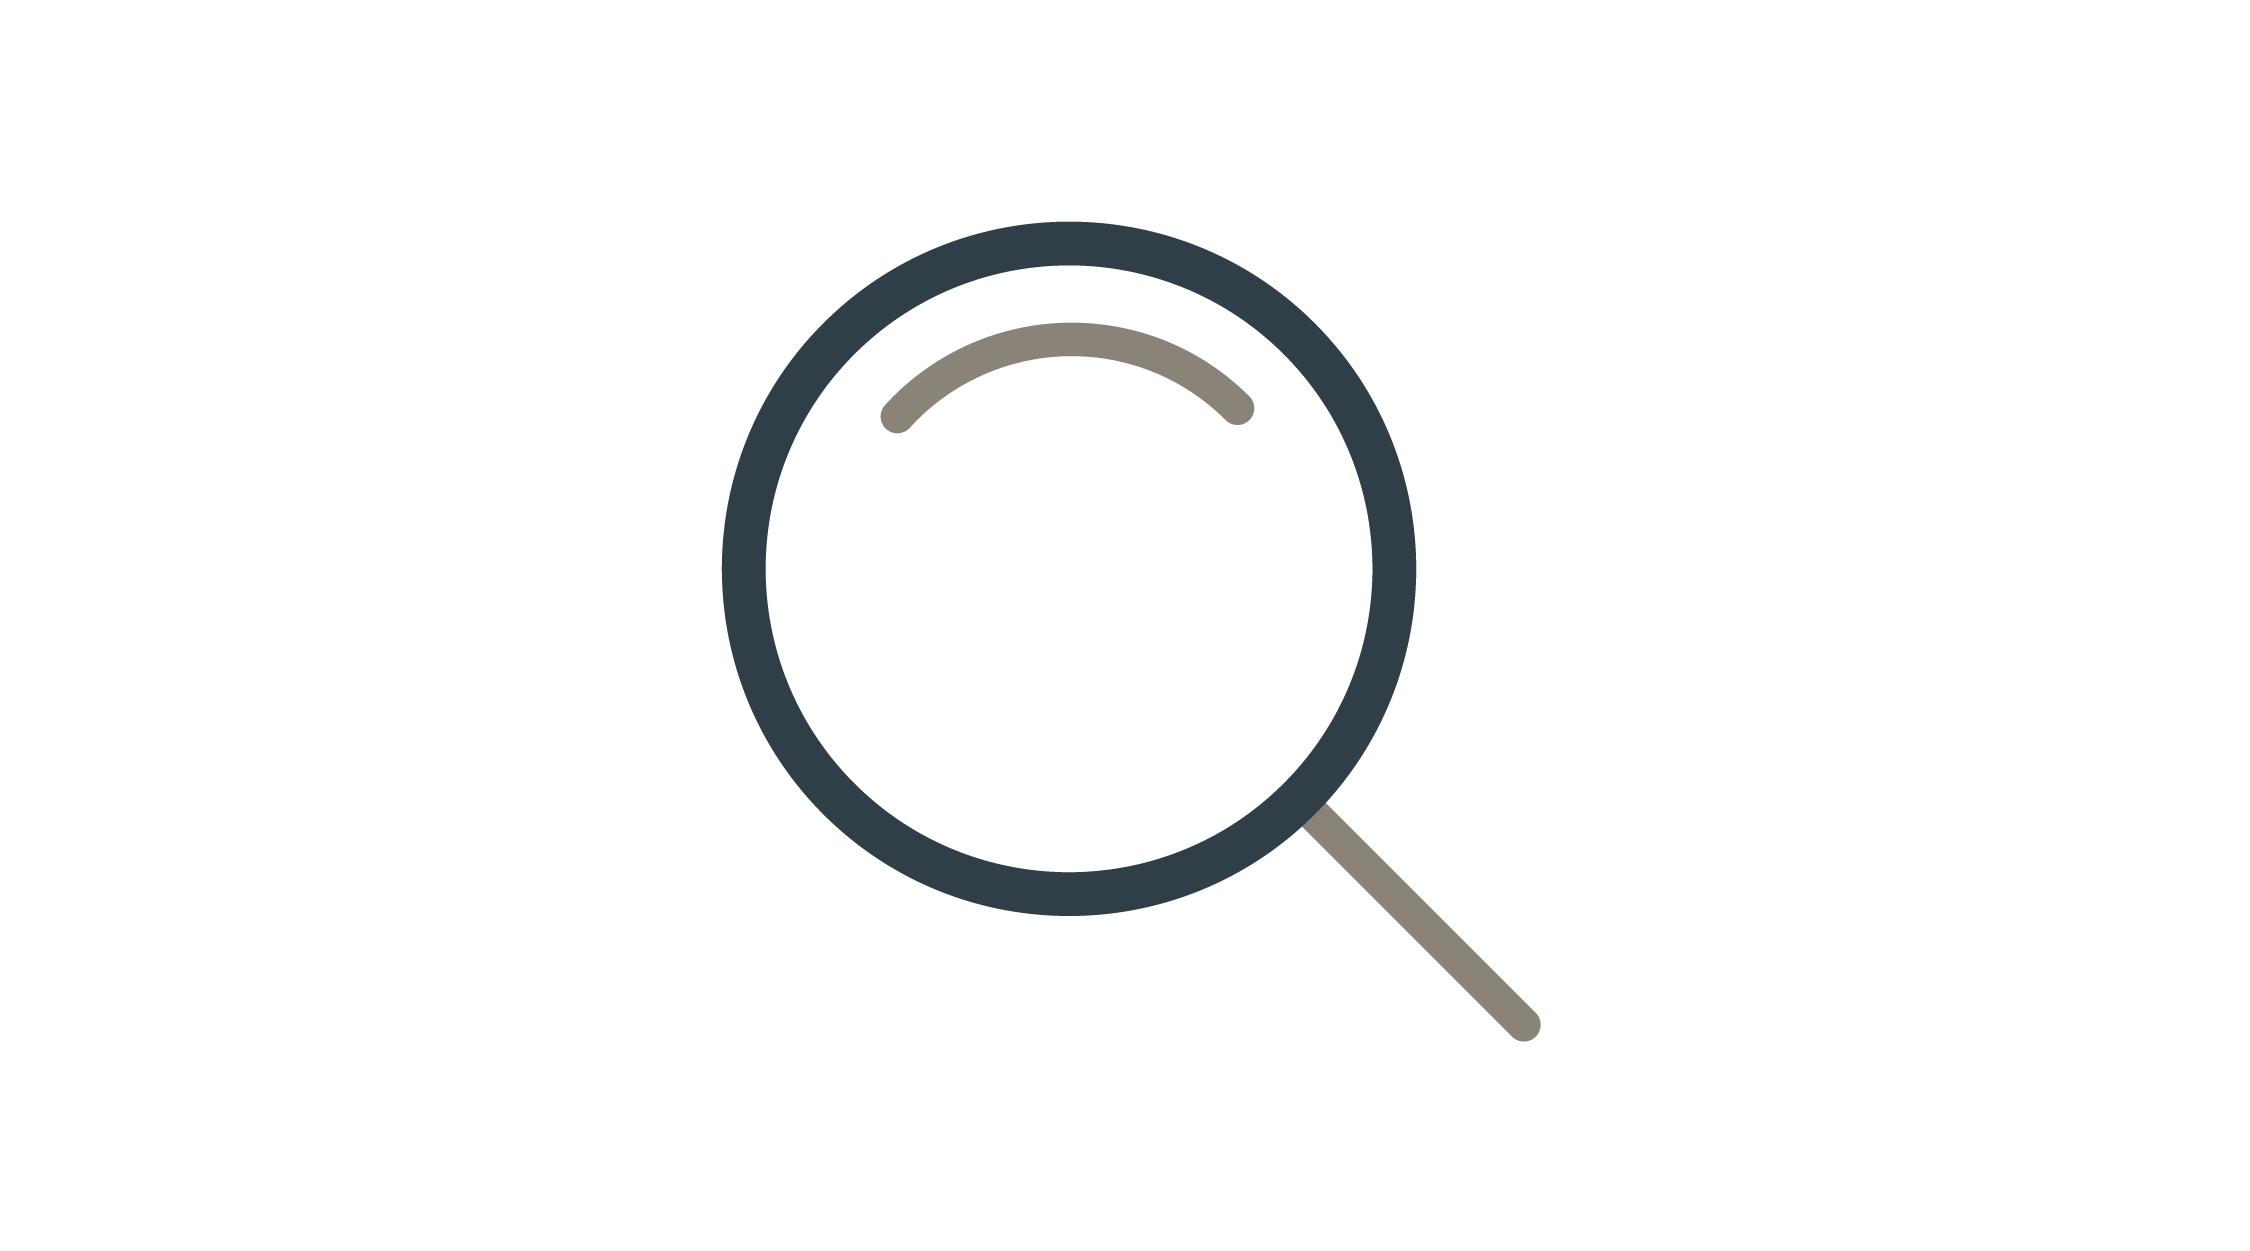 icon-magnifying-glass.png